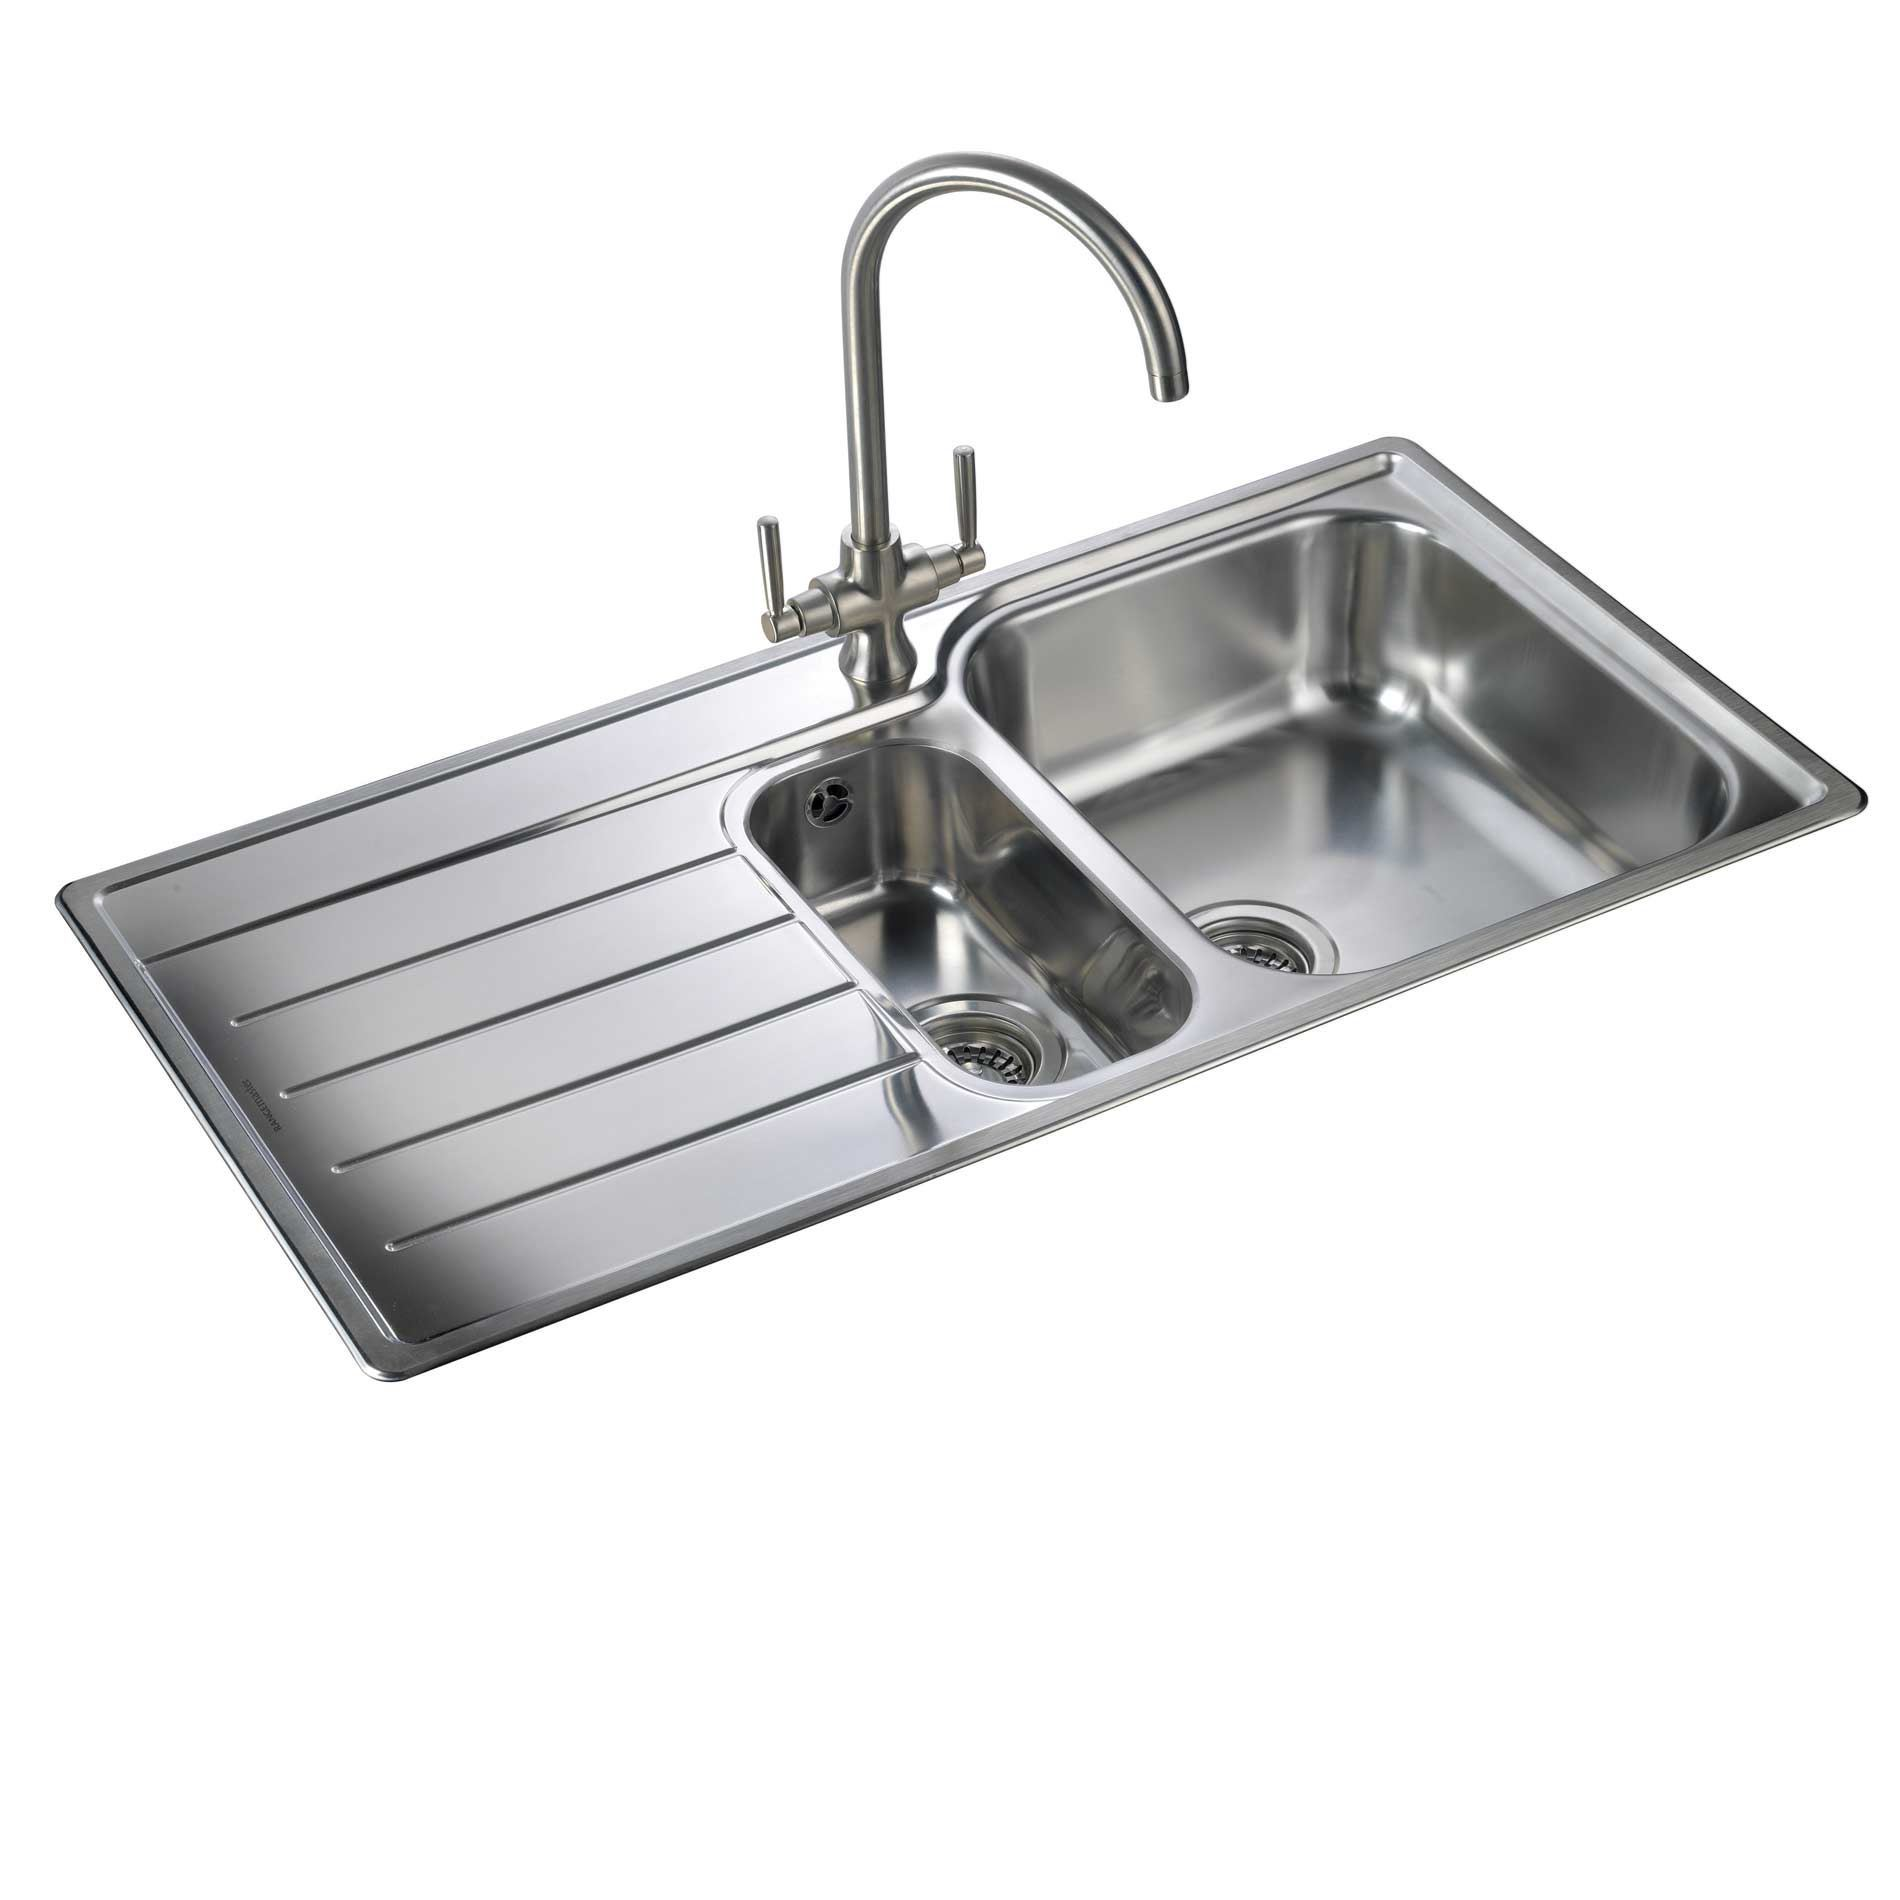 Kitchen Sinks & Taps - Rangemaster: Oakland OL9852